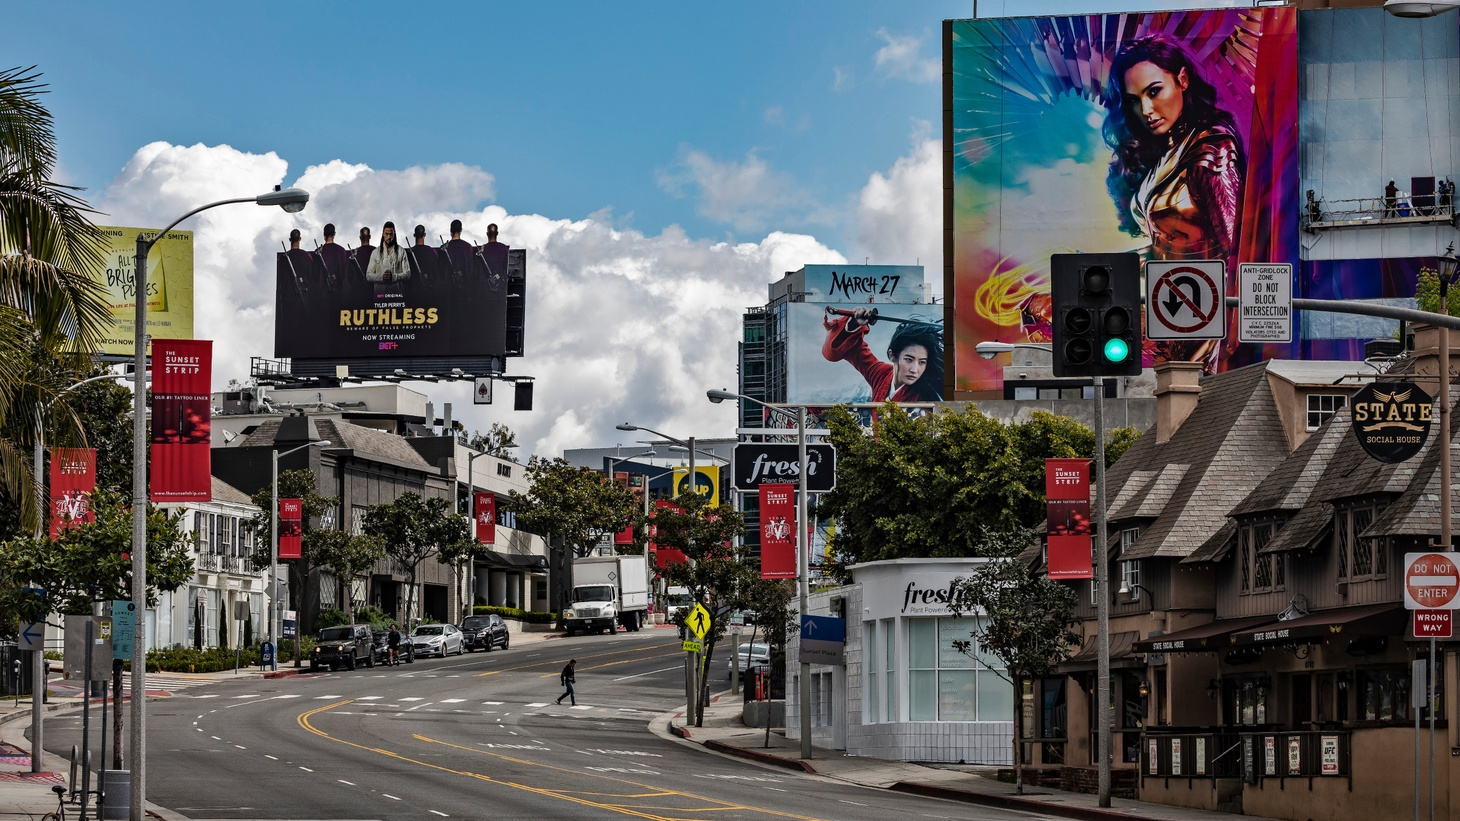 Sunset Blvd in West Hollywood, CA. March 23, 2020. USC students and teachers have developed a system of newsletters to provide hyper-local information to every corner of the city.